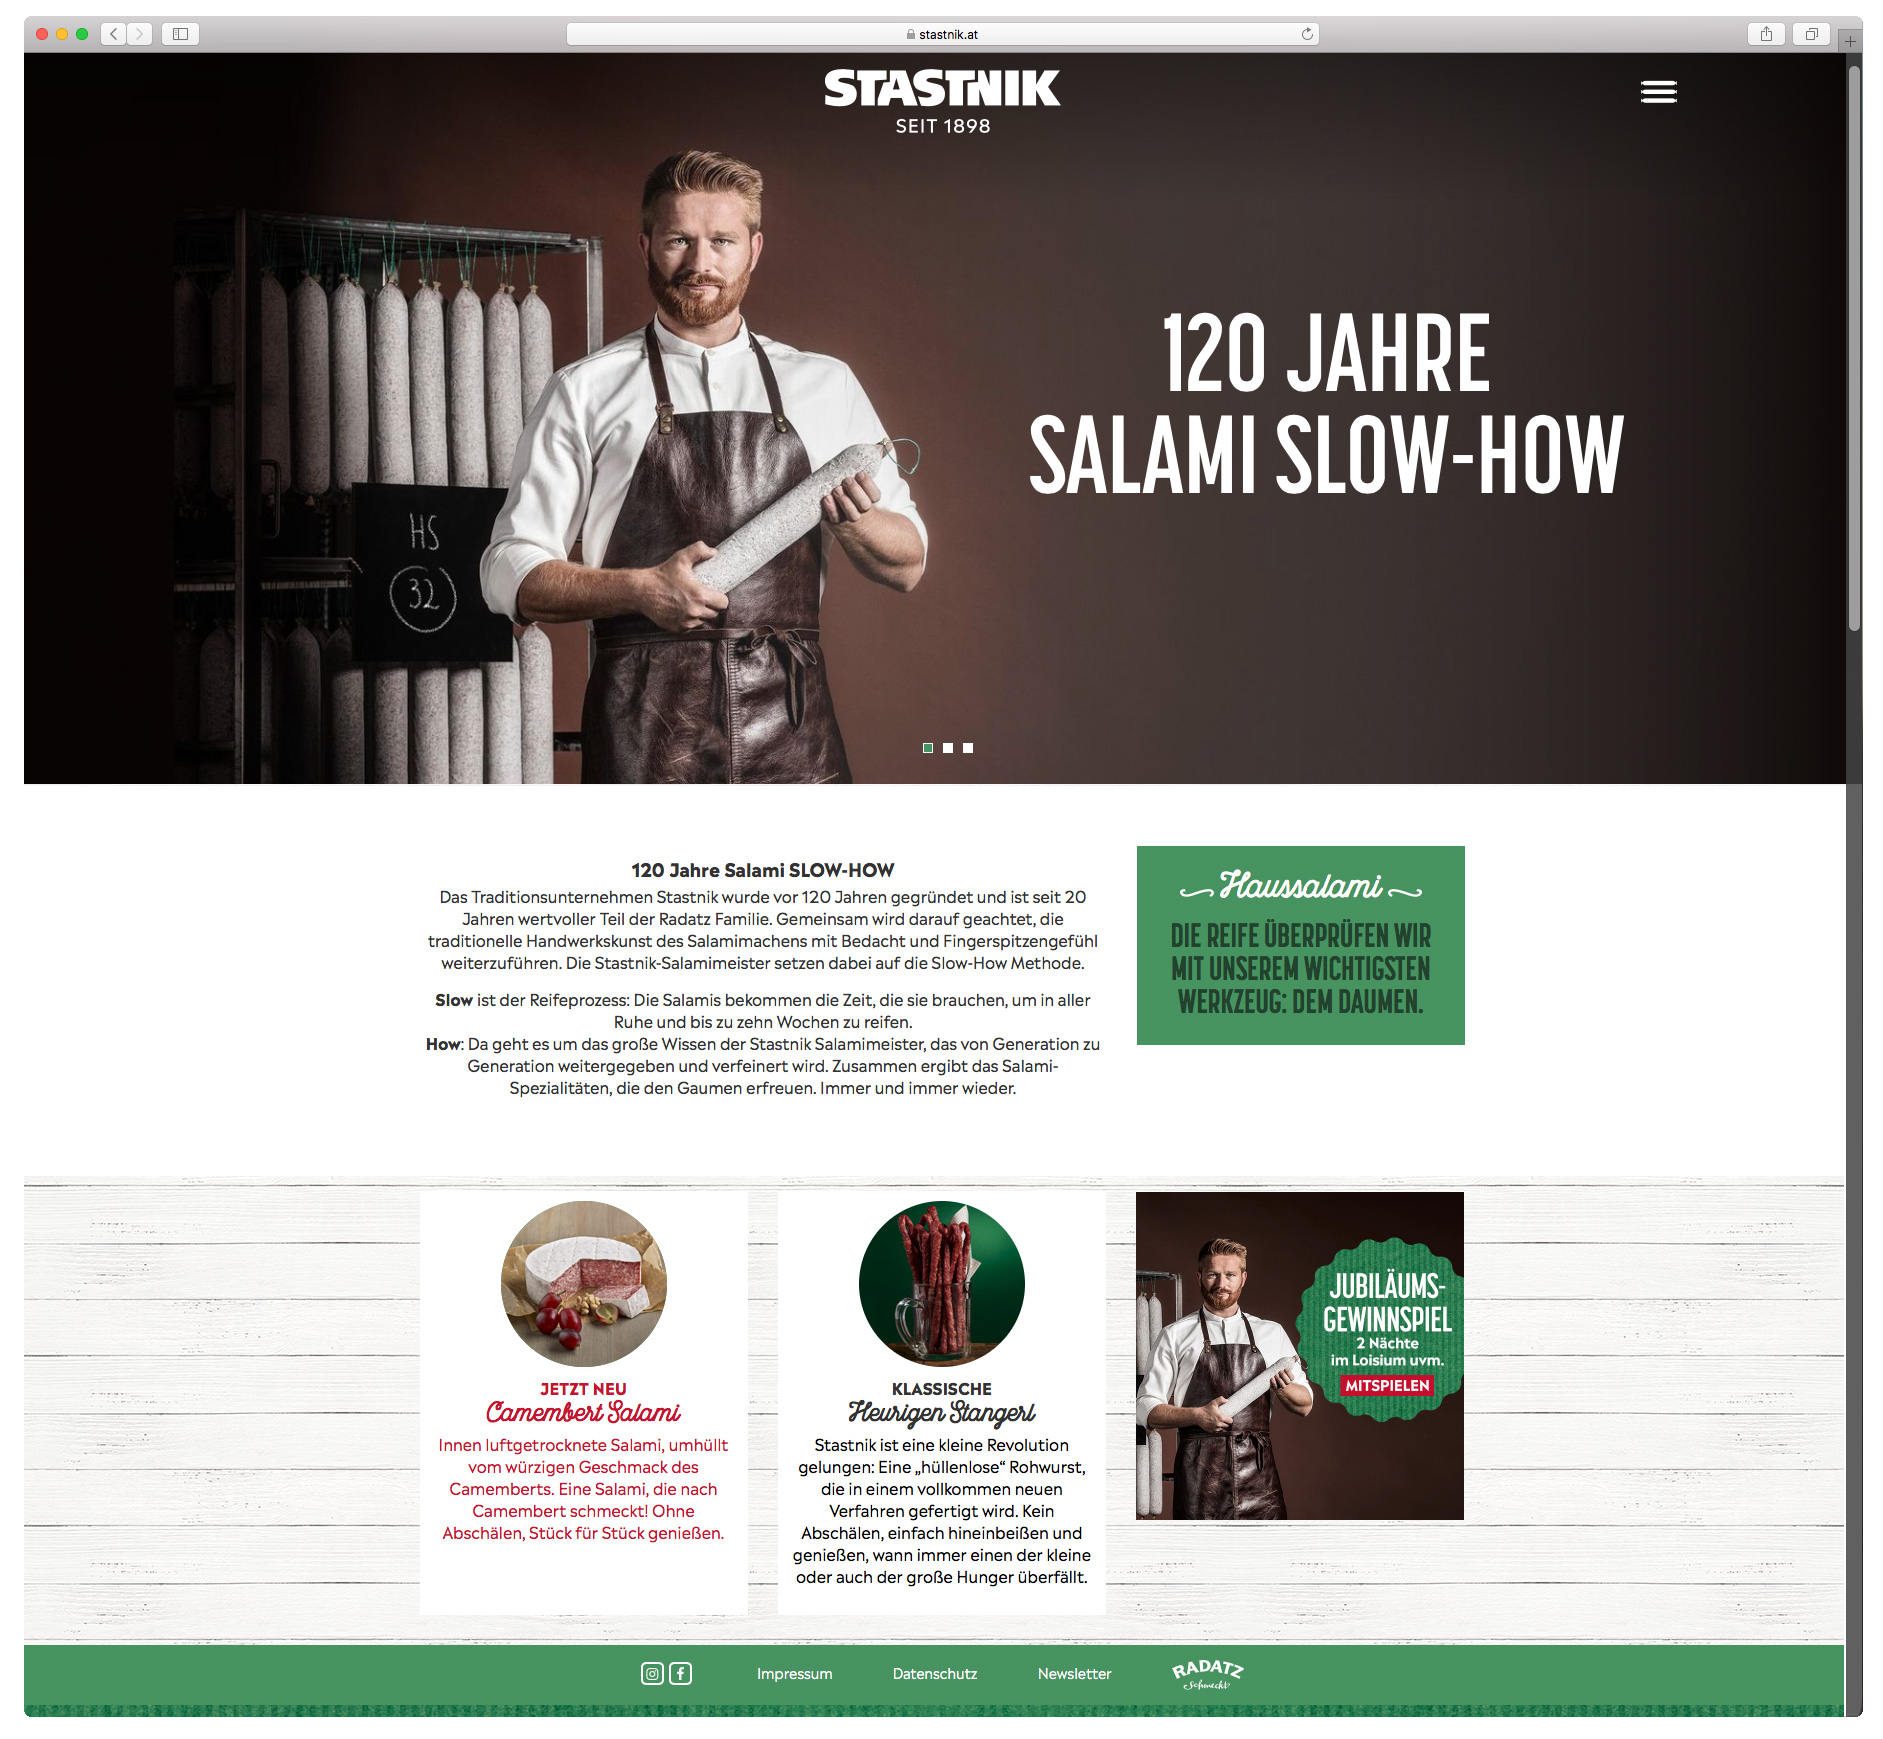 Stastnik_Website_georgzechner